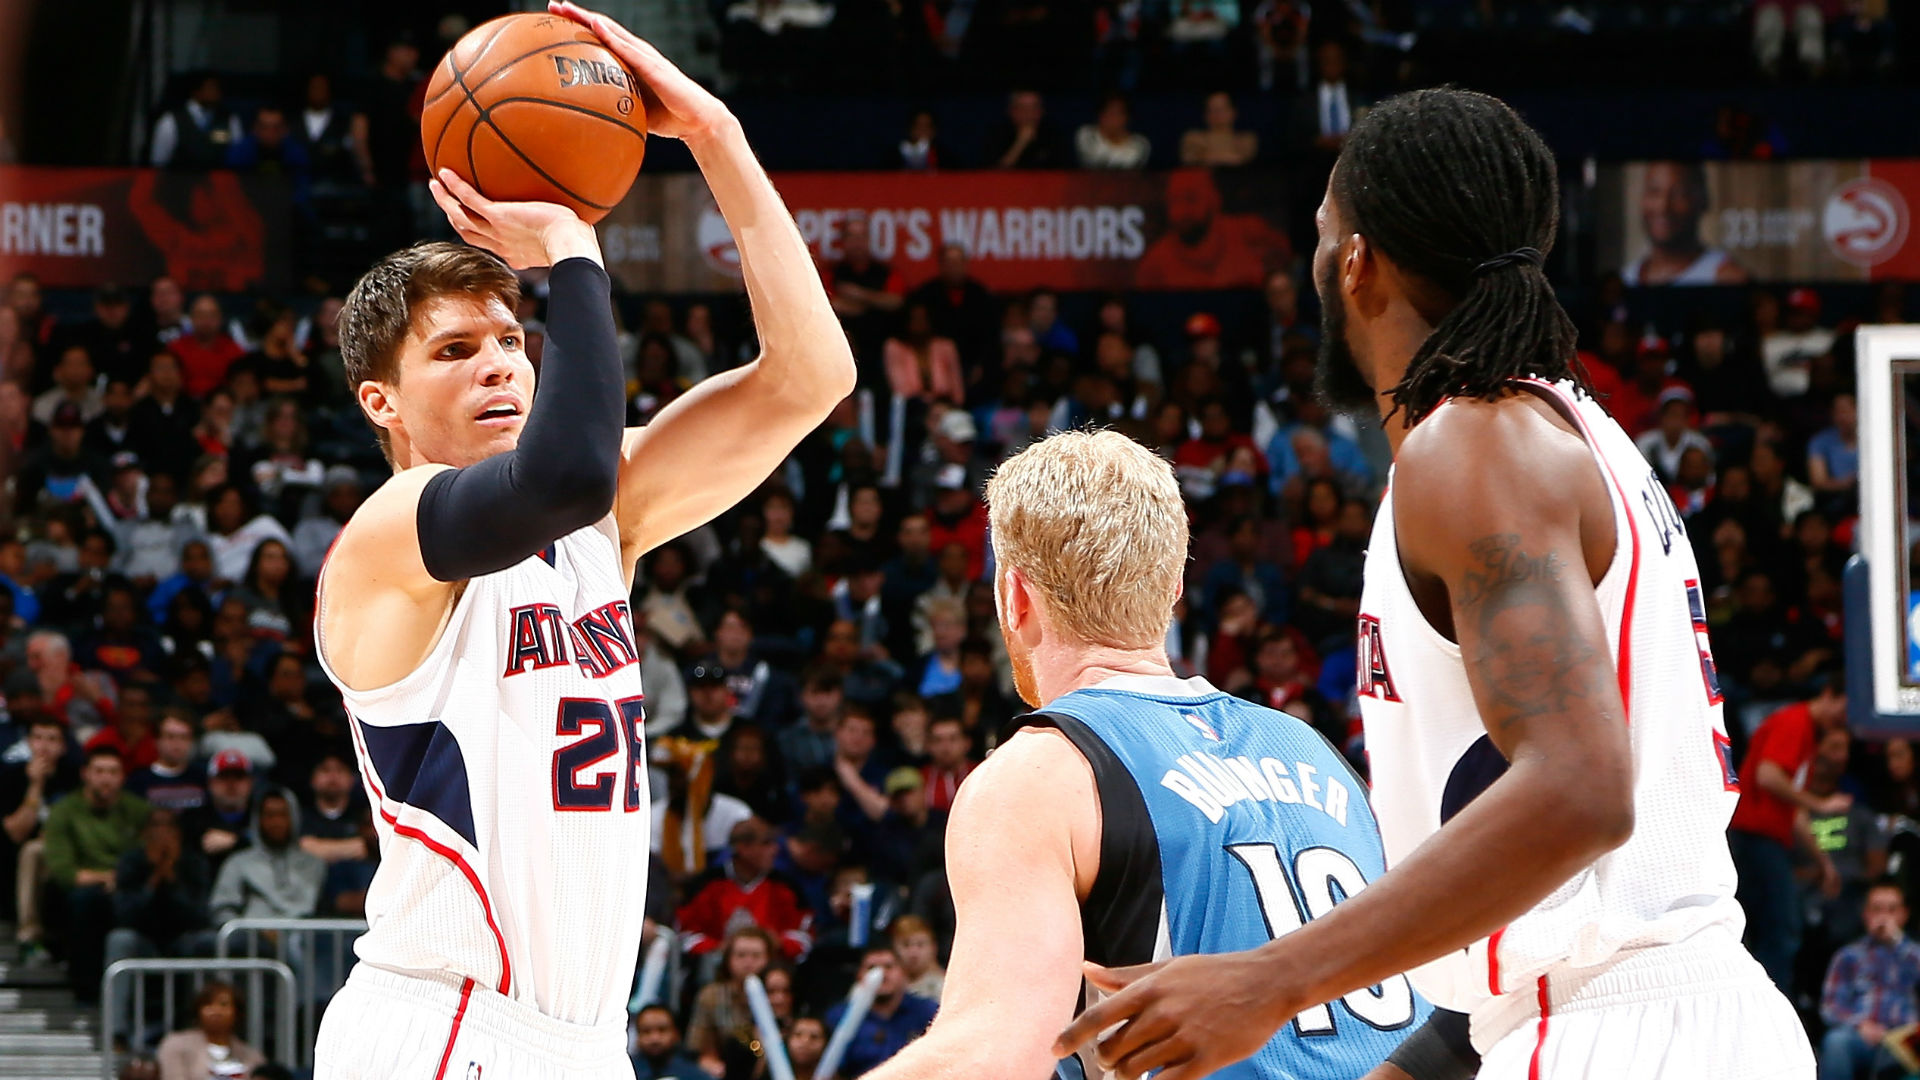 Three-Point Contest odds and pick - Hawks' Korver worthy of favorite status